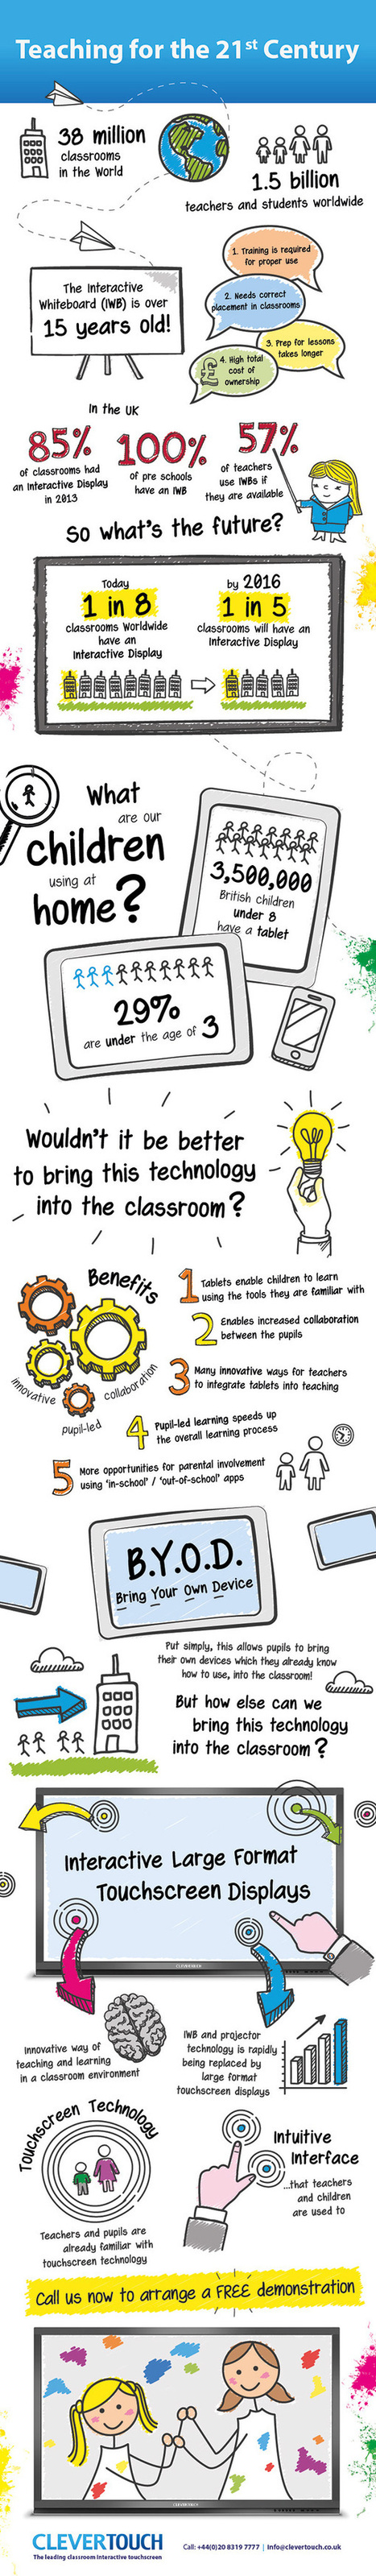 21st Century Teaching Infographic - e-Learning Infographics | Tech issues in ELT | Scoop.it